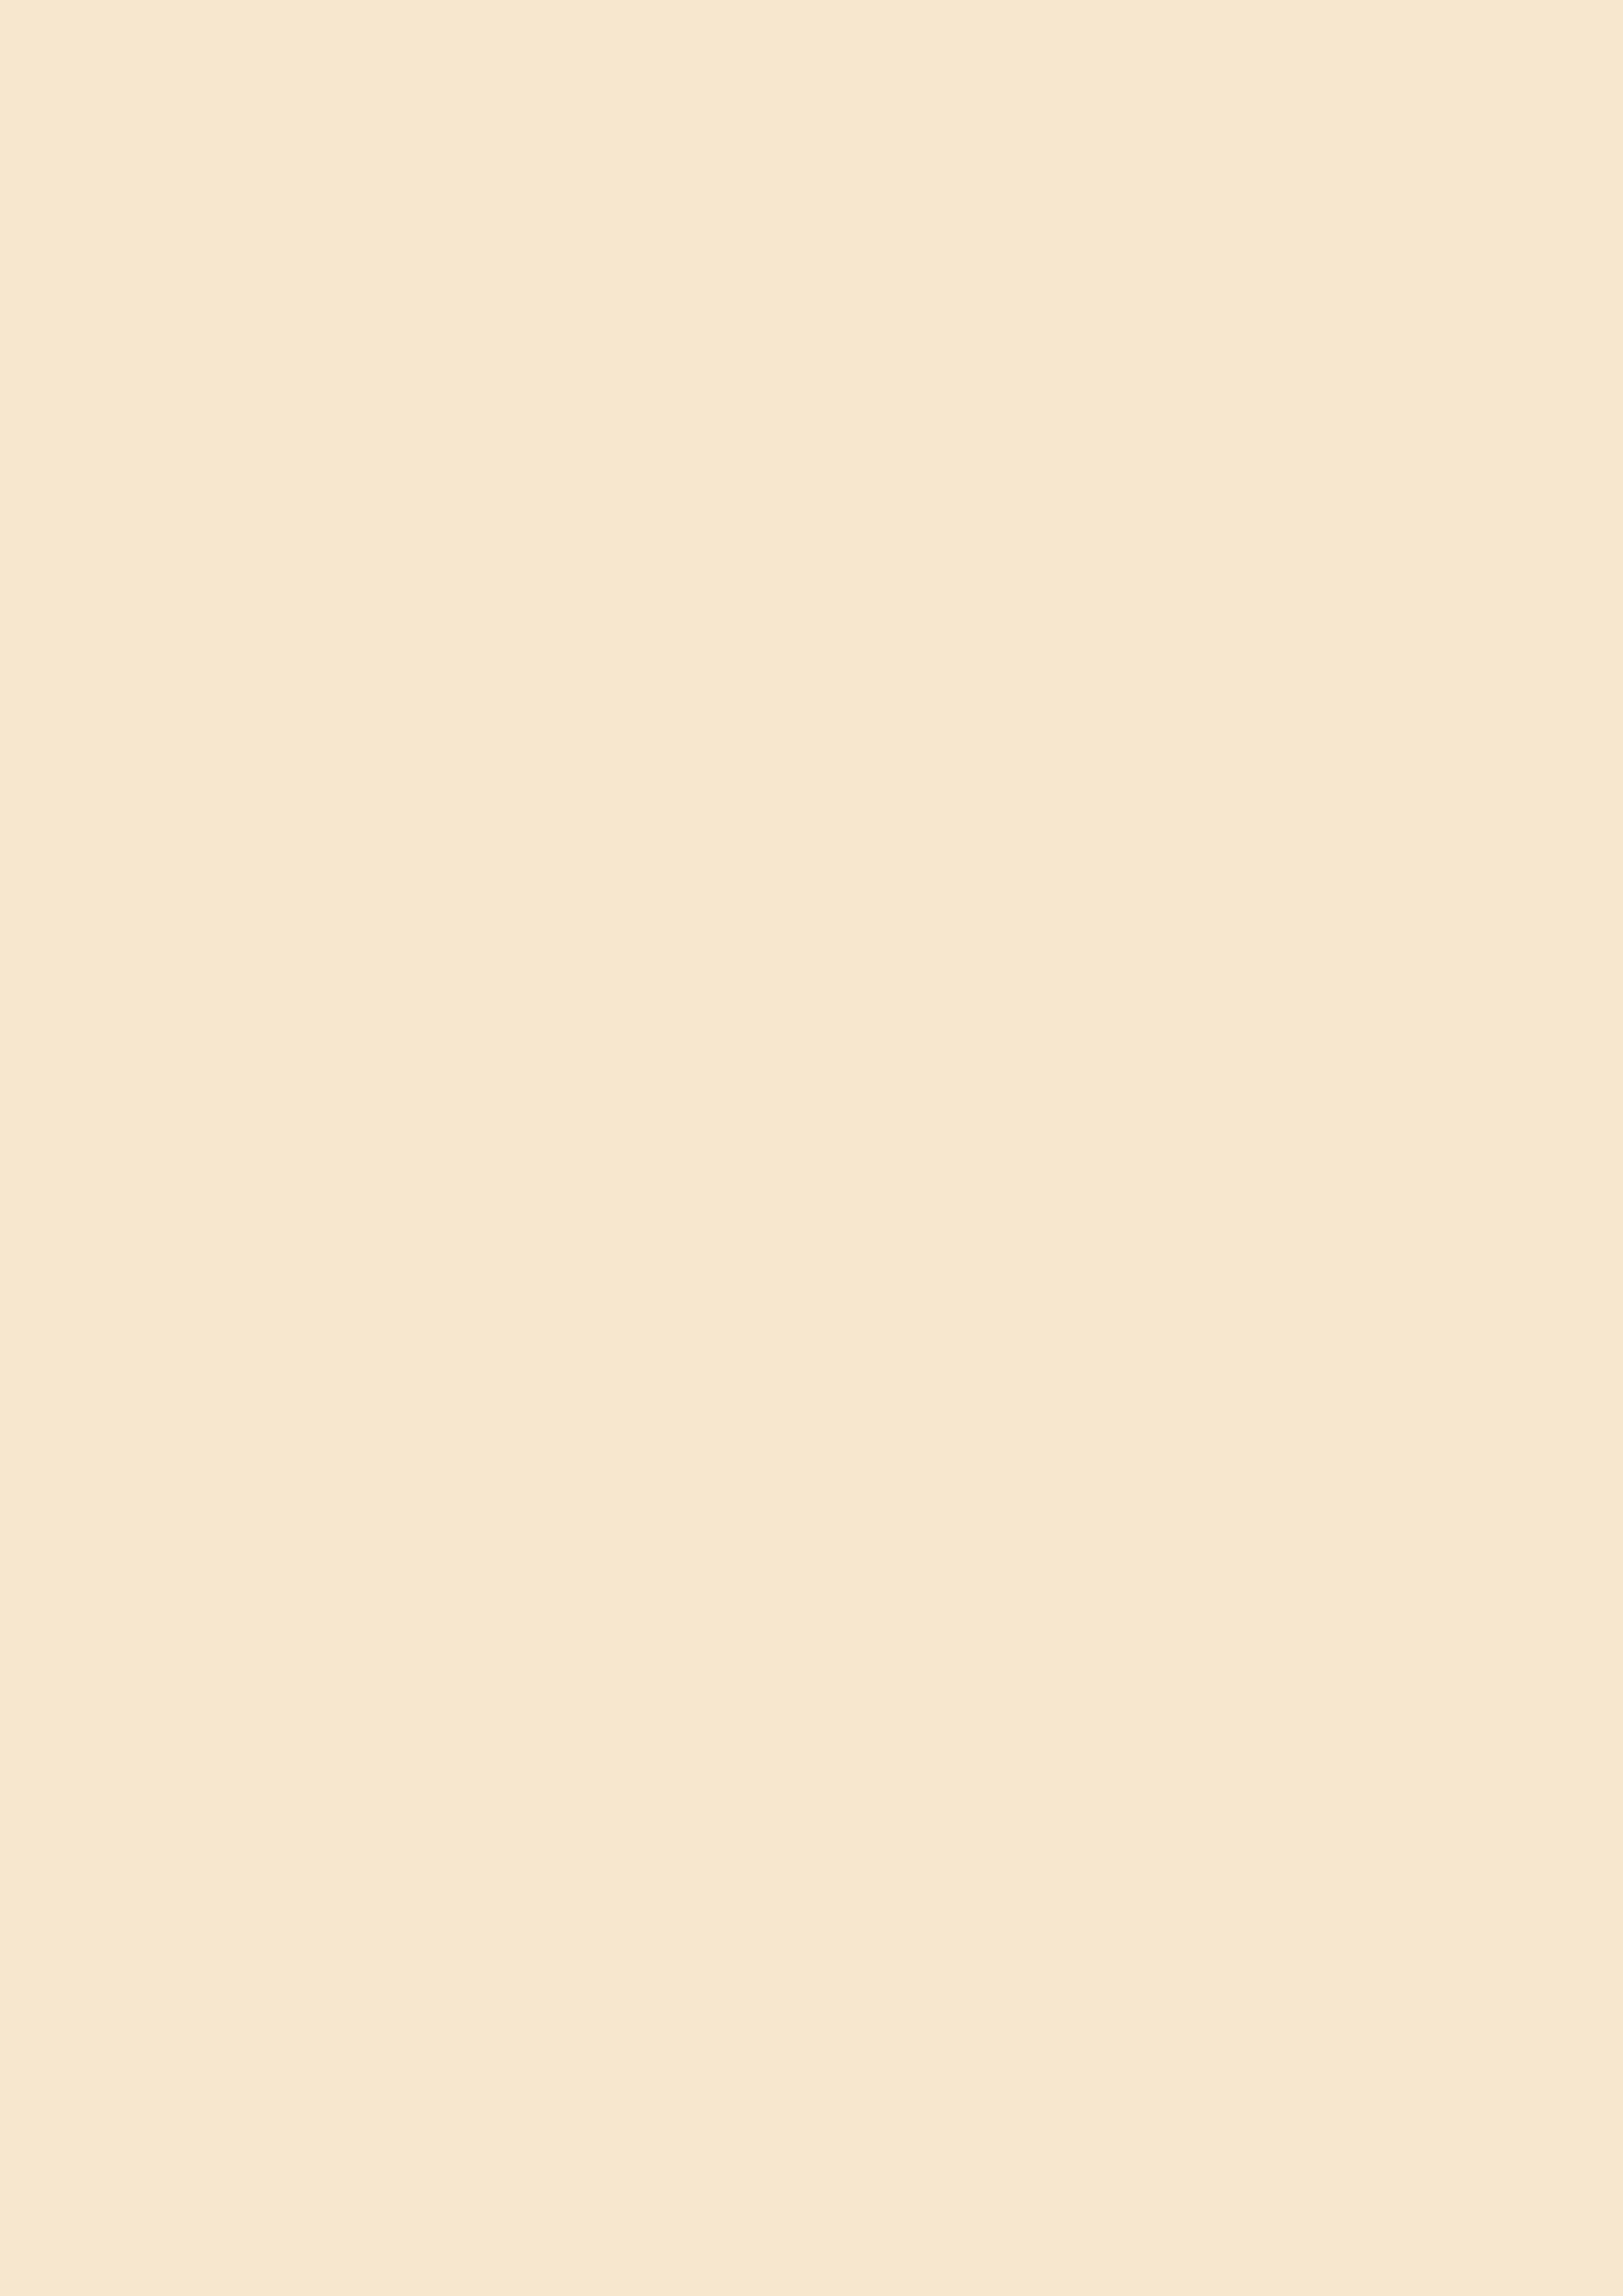 2480x3508 Champagne Solid Color Background